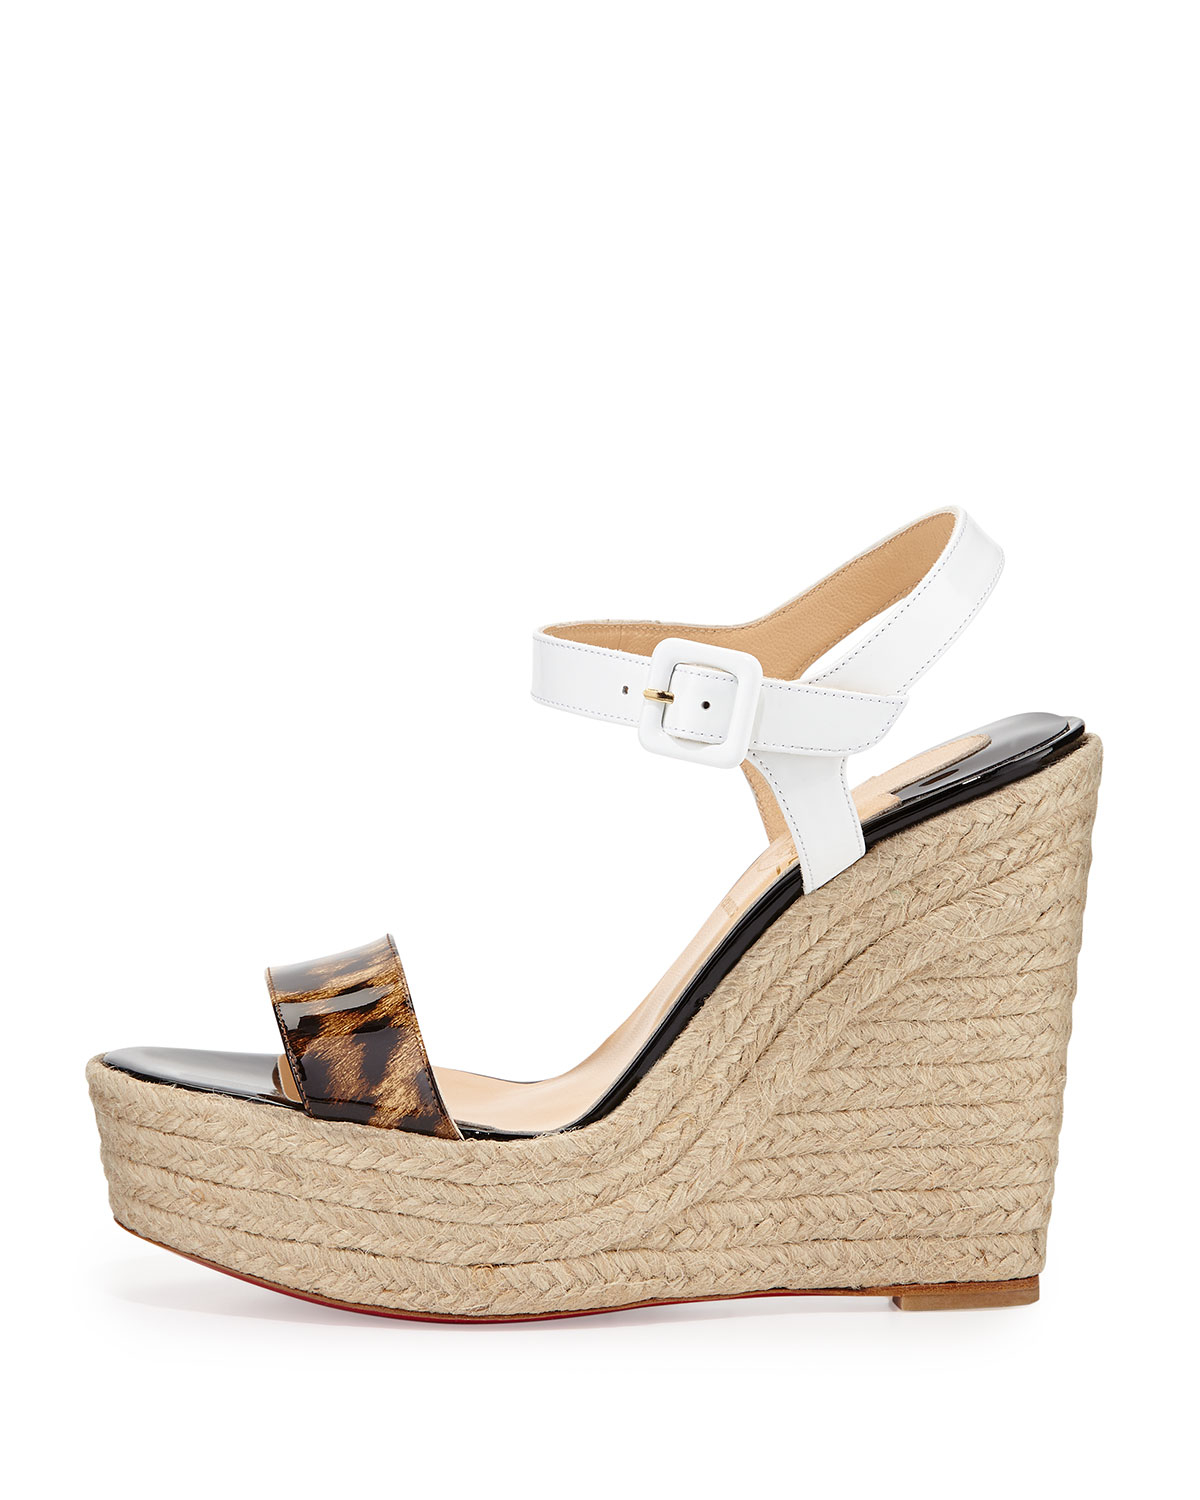 mens red bottom shoes price - christian louboutin espadrille wedges Brown perforated leather ...